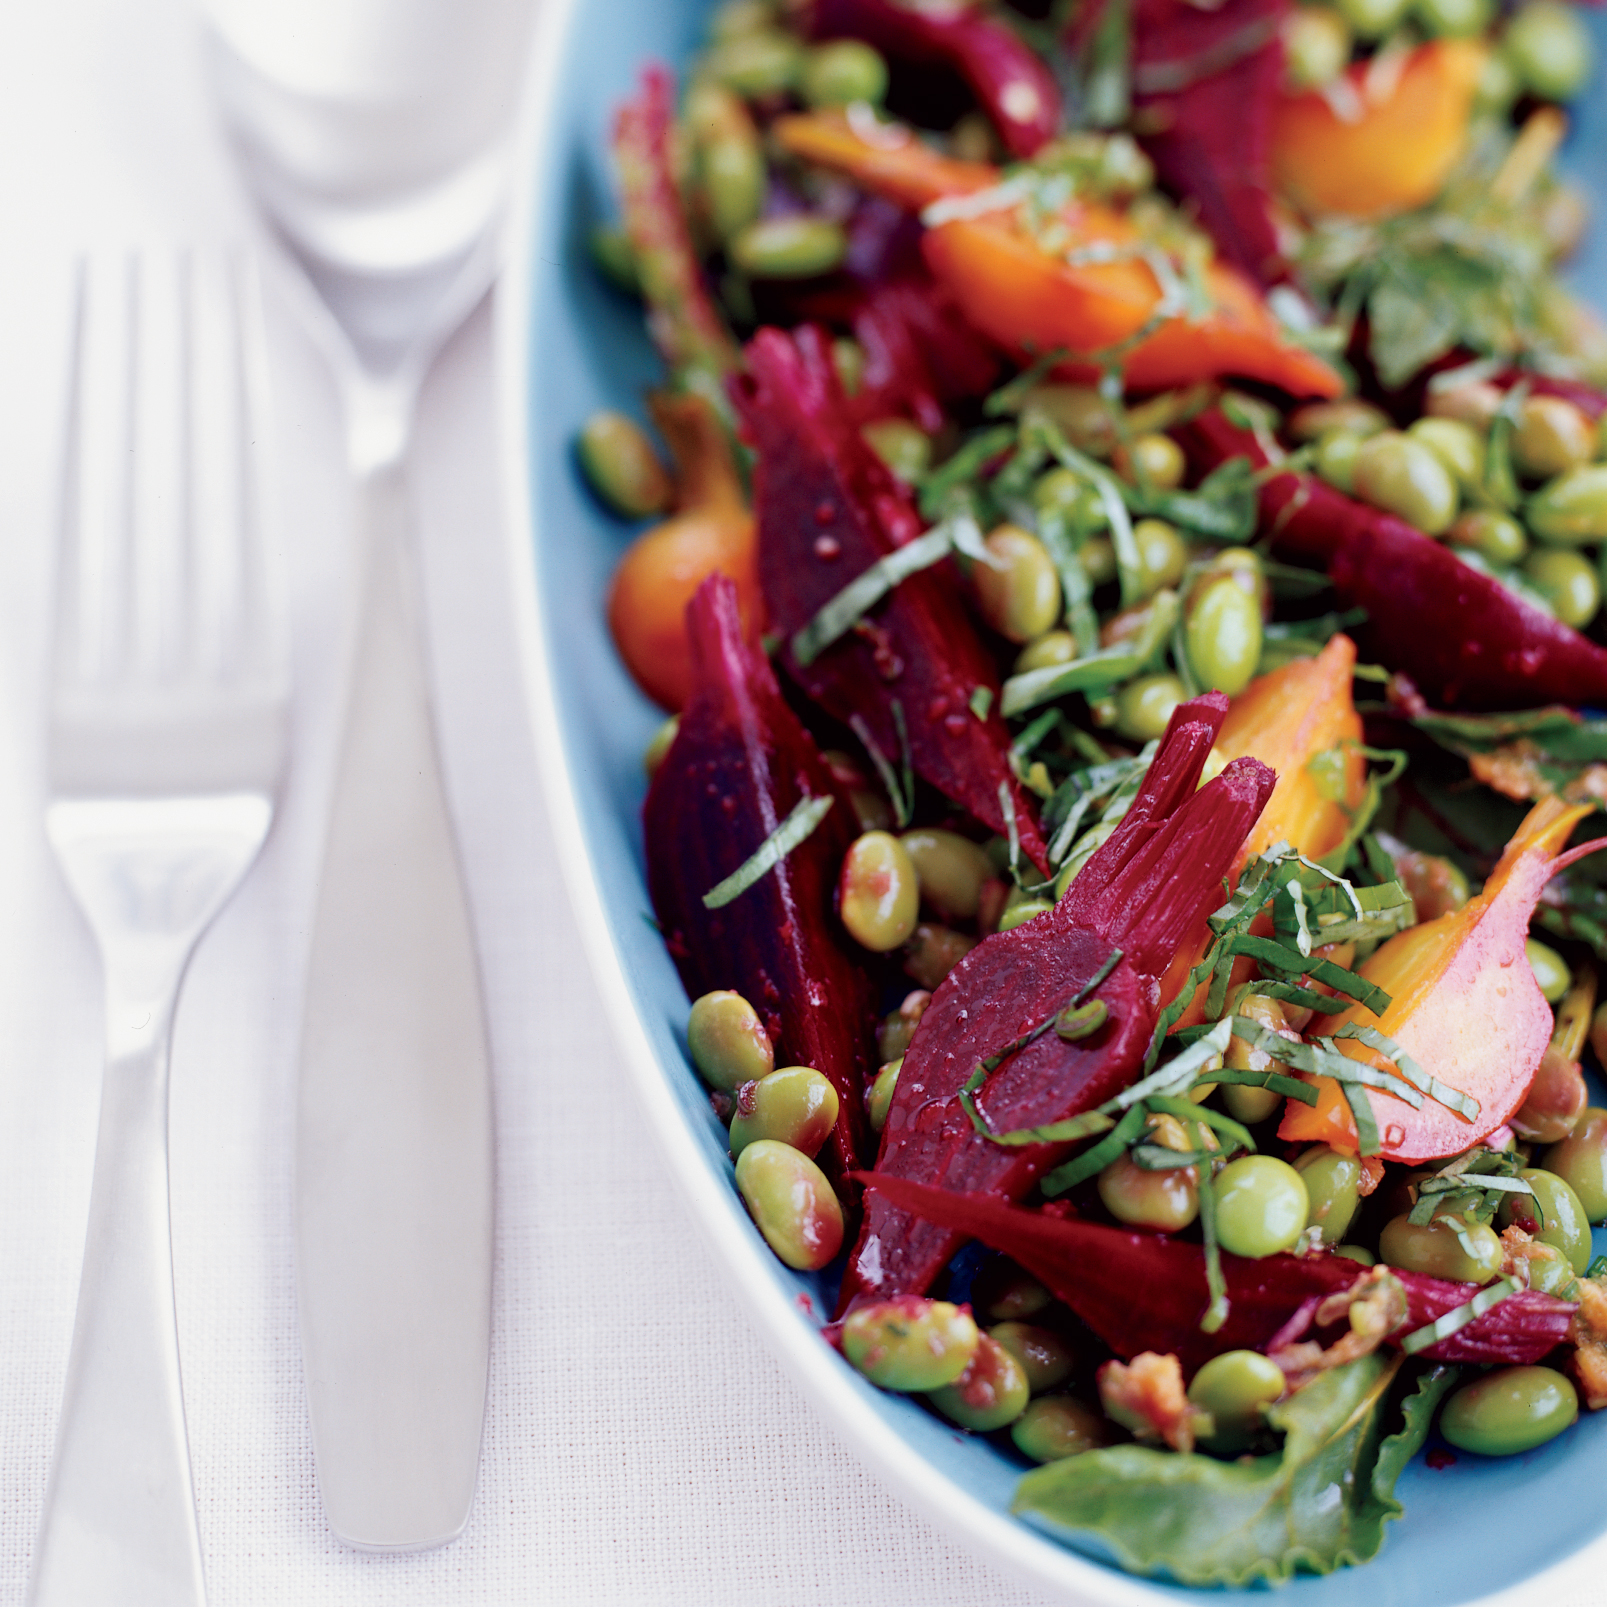 Edamame Salad with Baby Beets and Greens